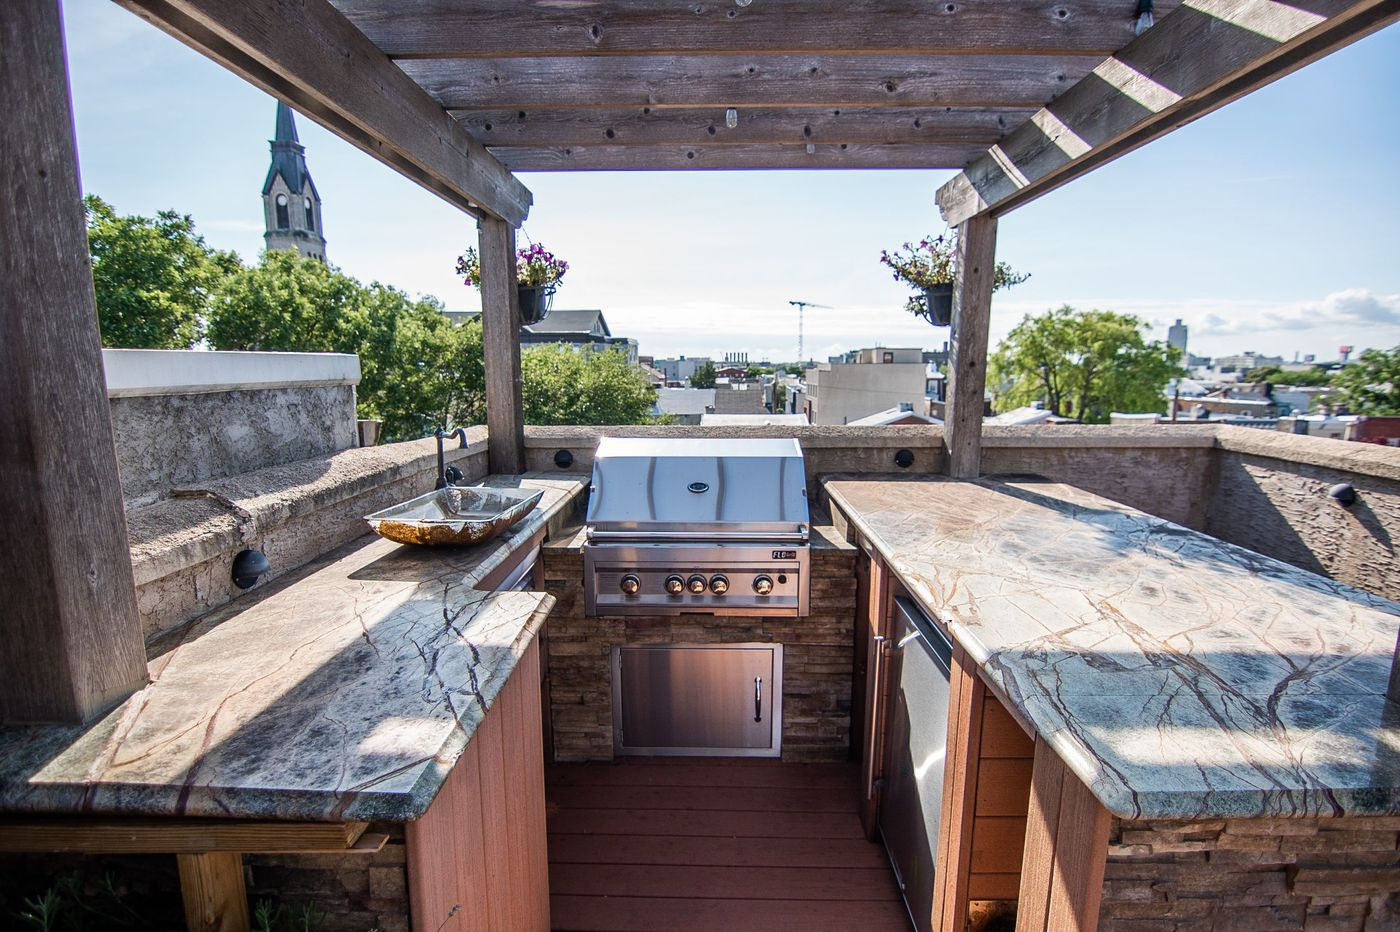 On the market: A 'city oasis' in Northern Liberties for $685,000